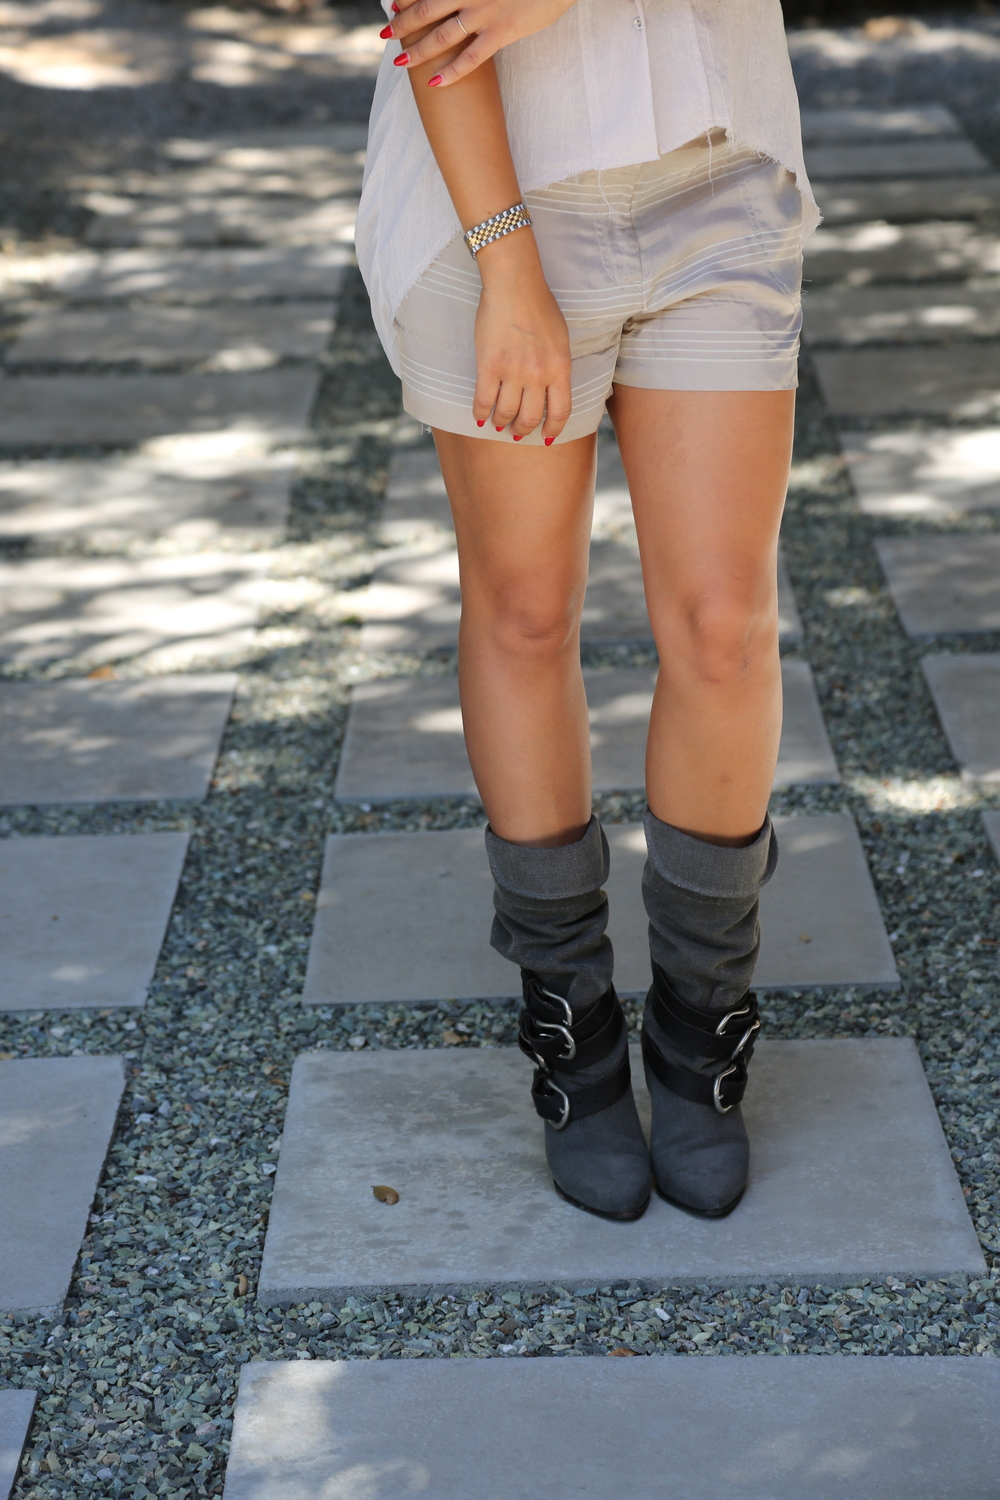 VANESSA-BELETIC-STYLE-ISABEL-MARANT-BOOTS-GREY-LOS-ANGELES.JPG